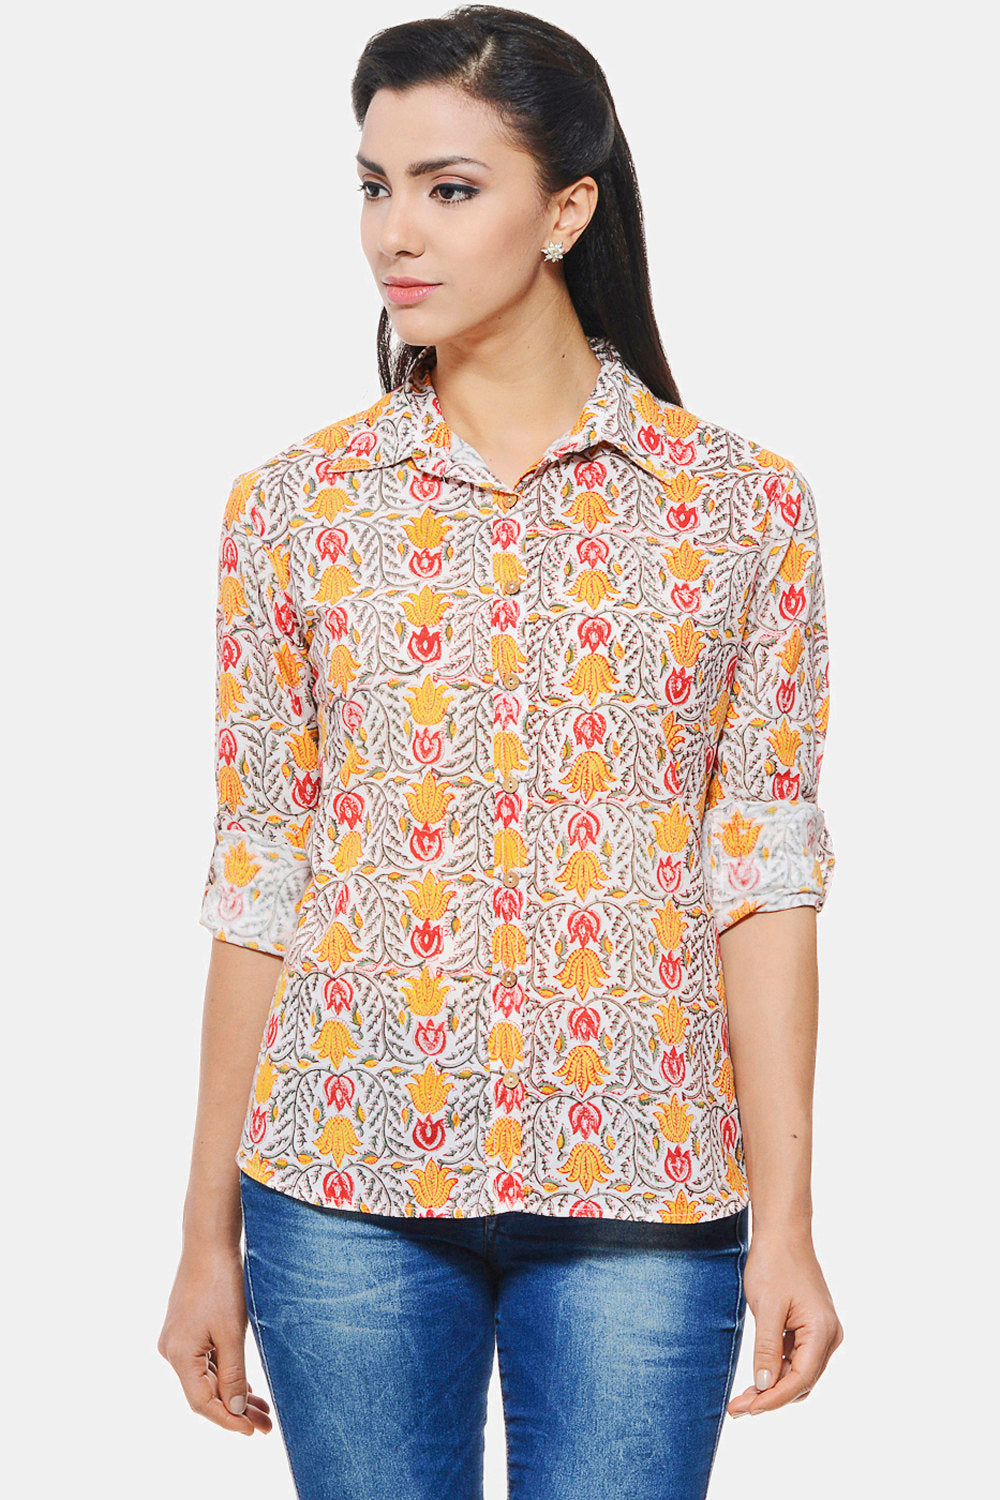 Hand block printed Shirt with yellow and red floral design